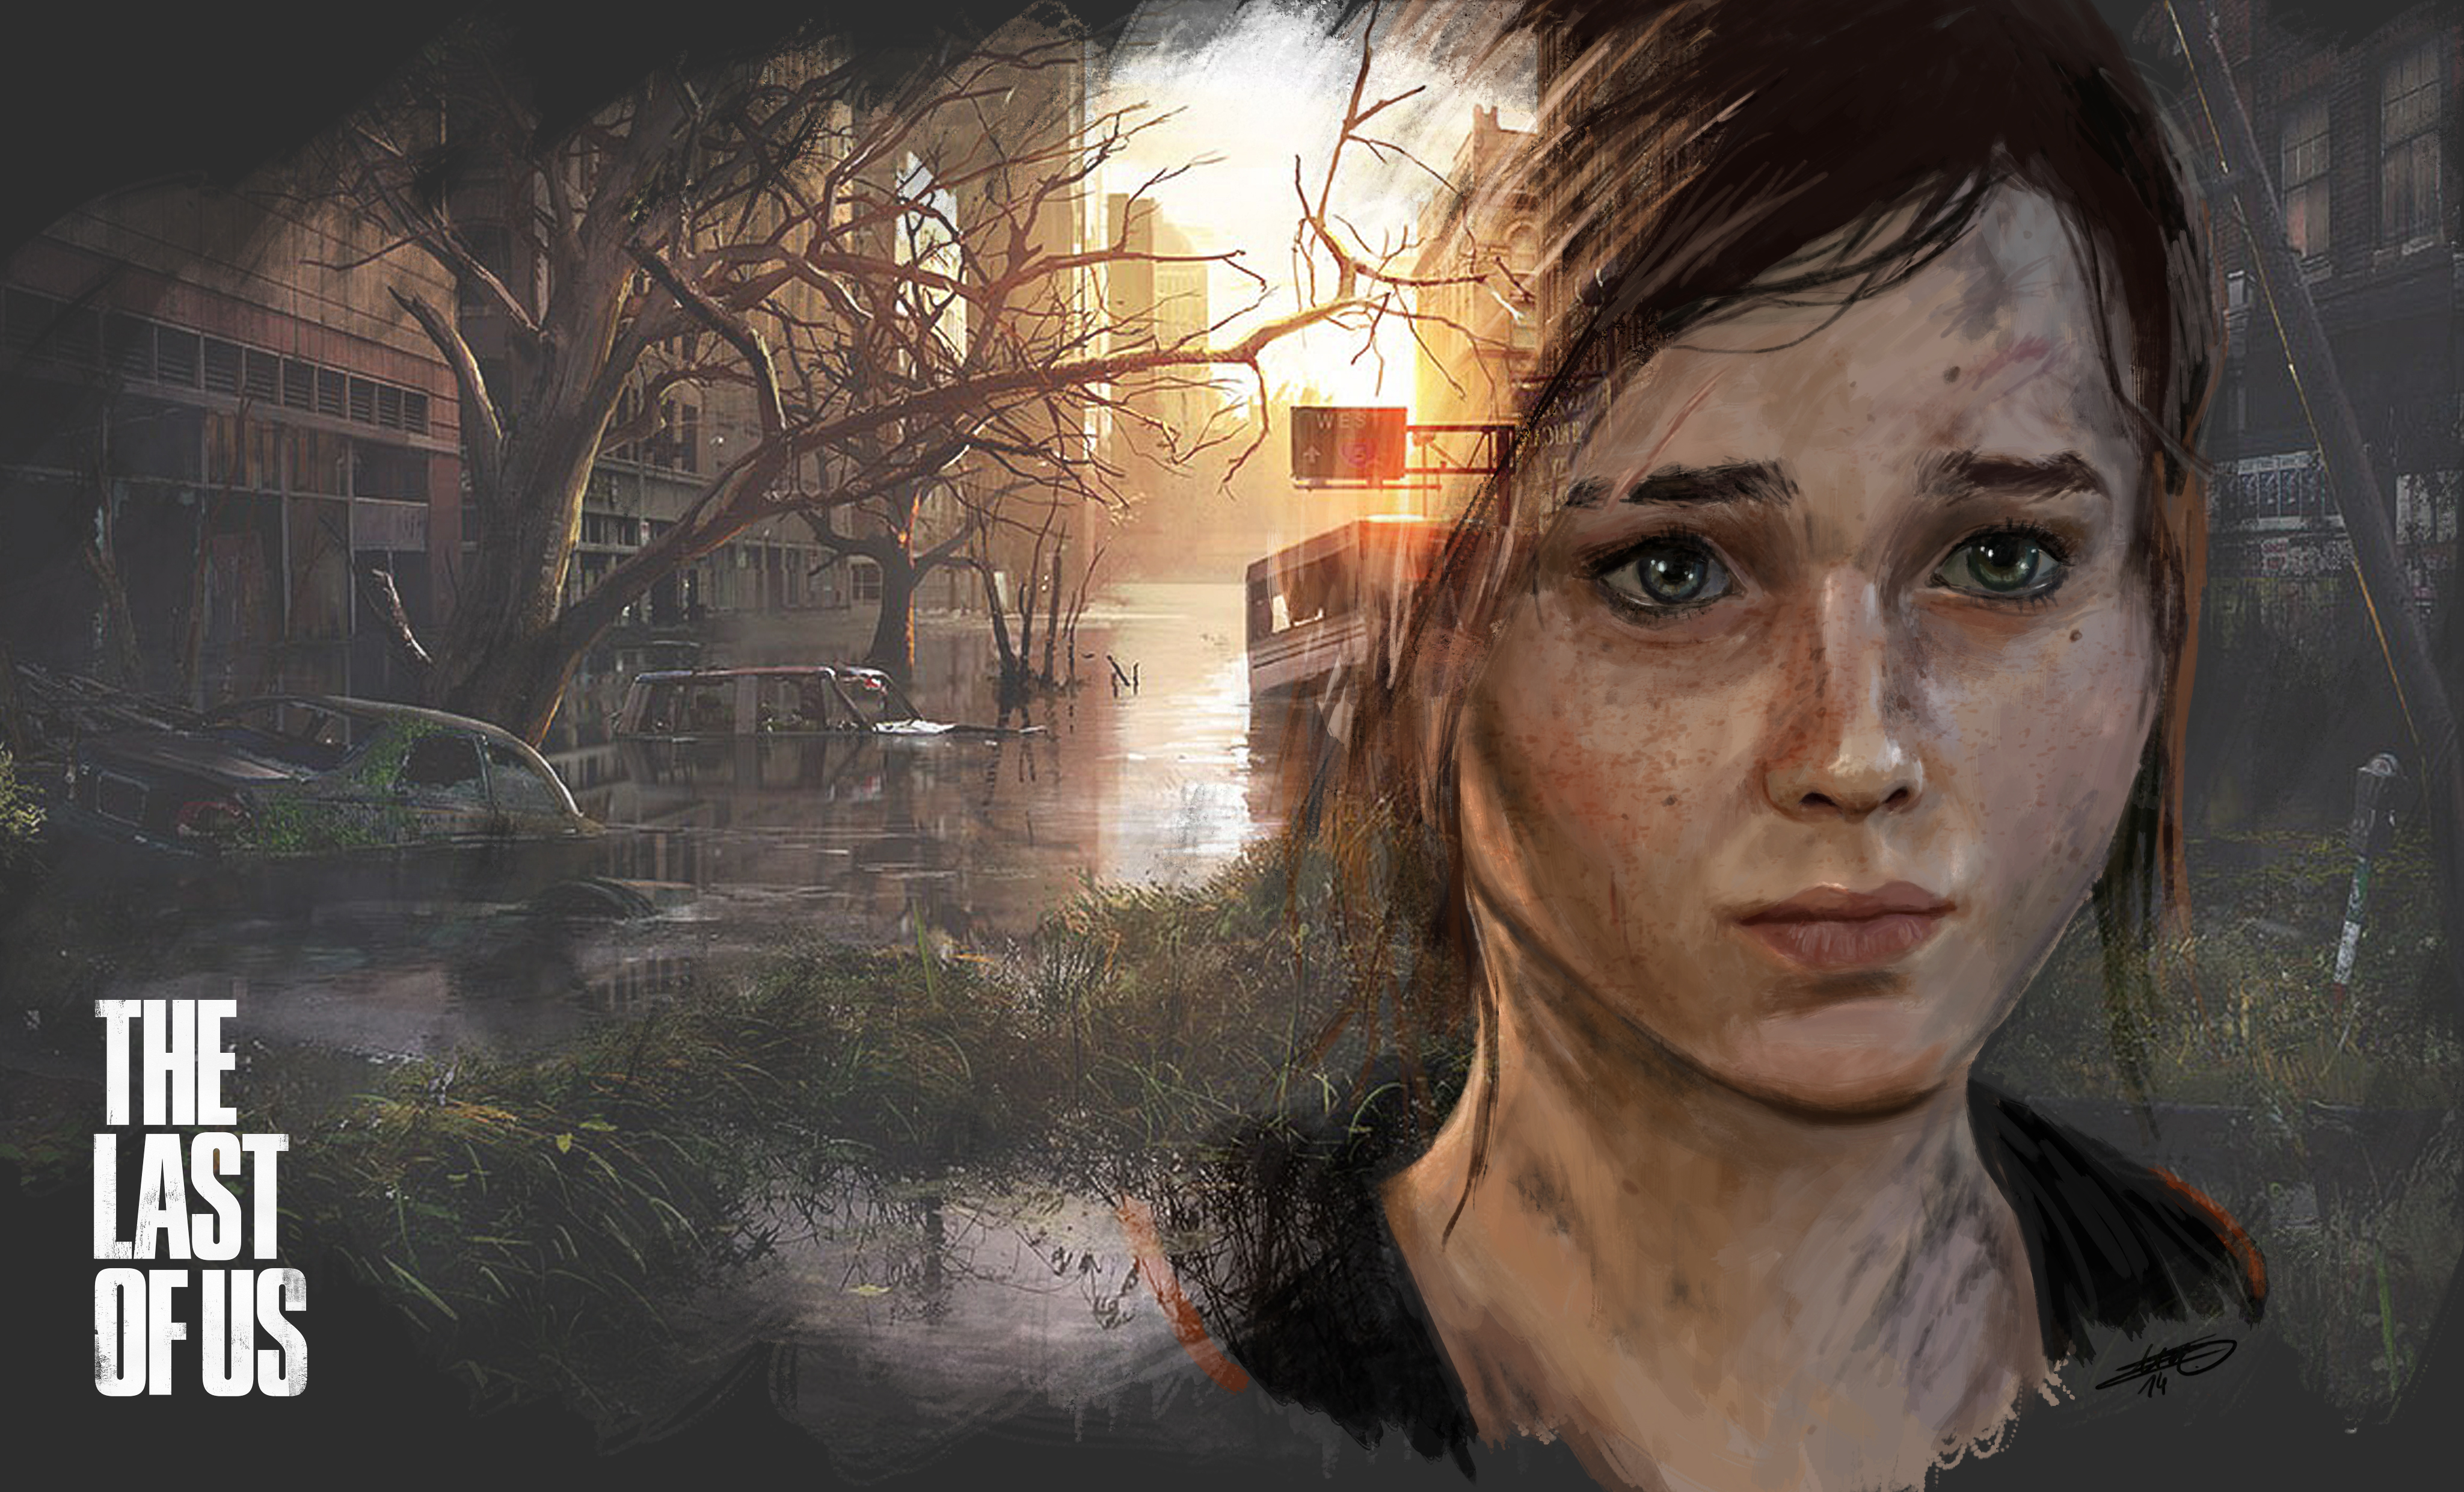 Ellie - The Last of Us by LoiccoiL on DeviantArt